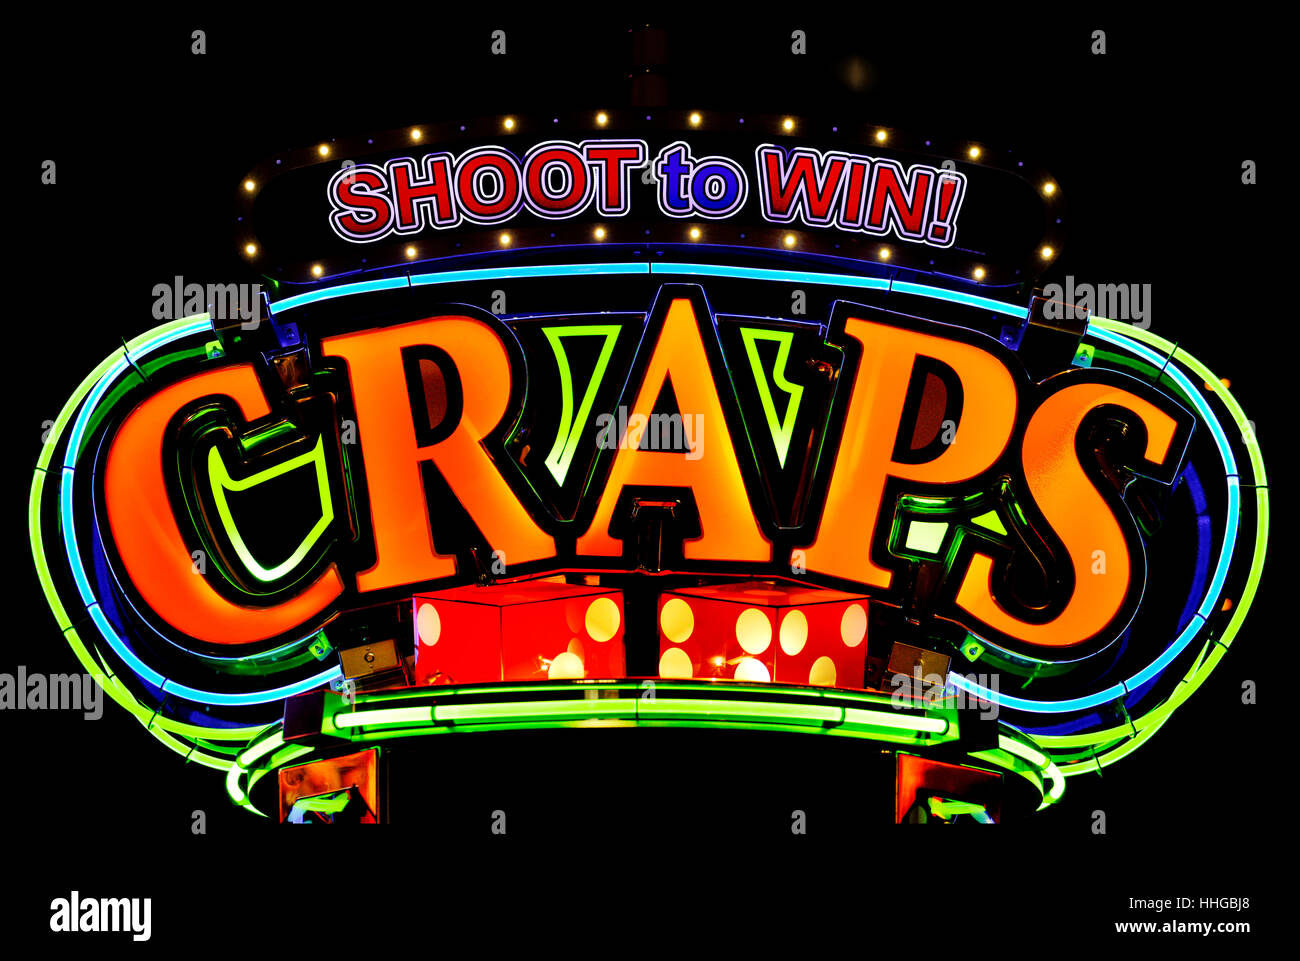 Shoot to Win Electronic Craps Game Neon Sign - Stock Image